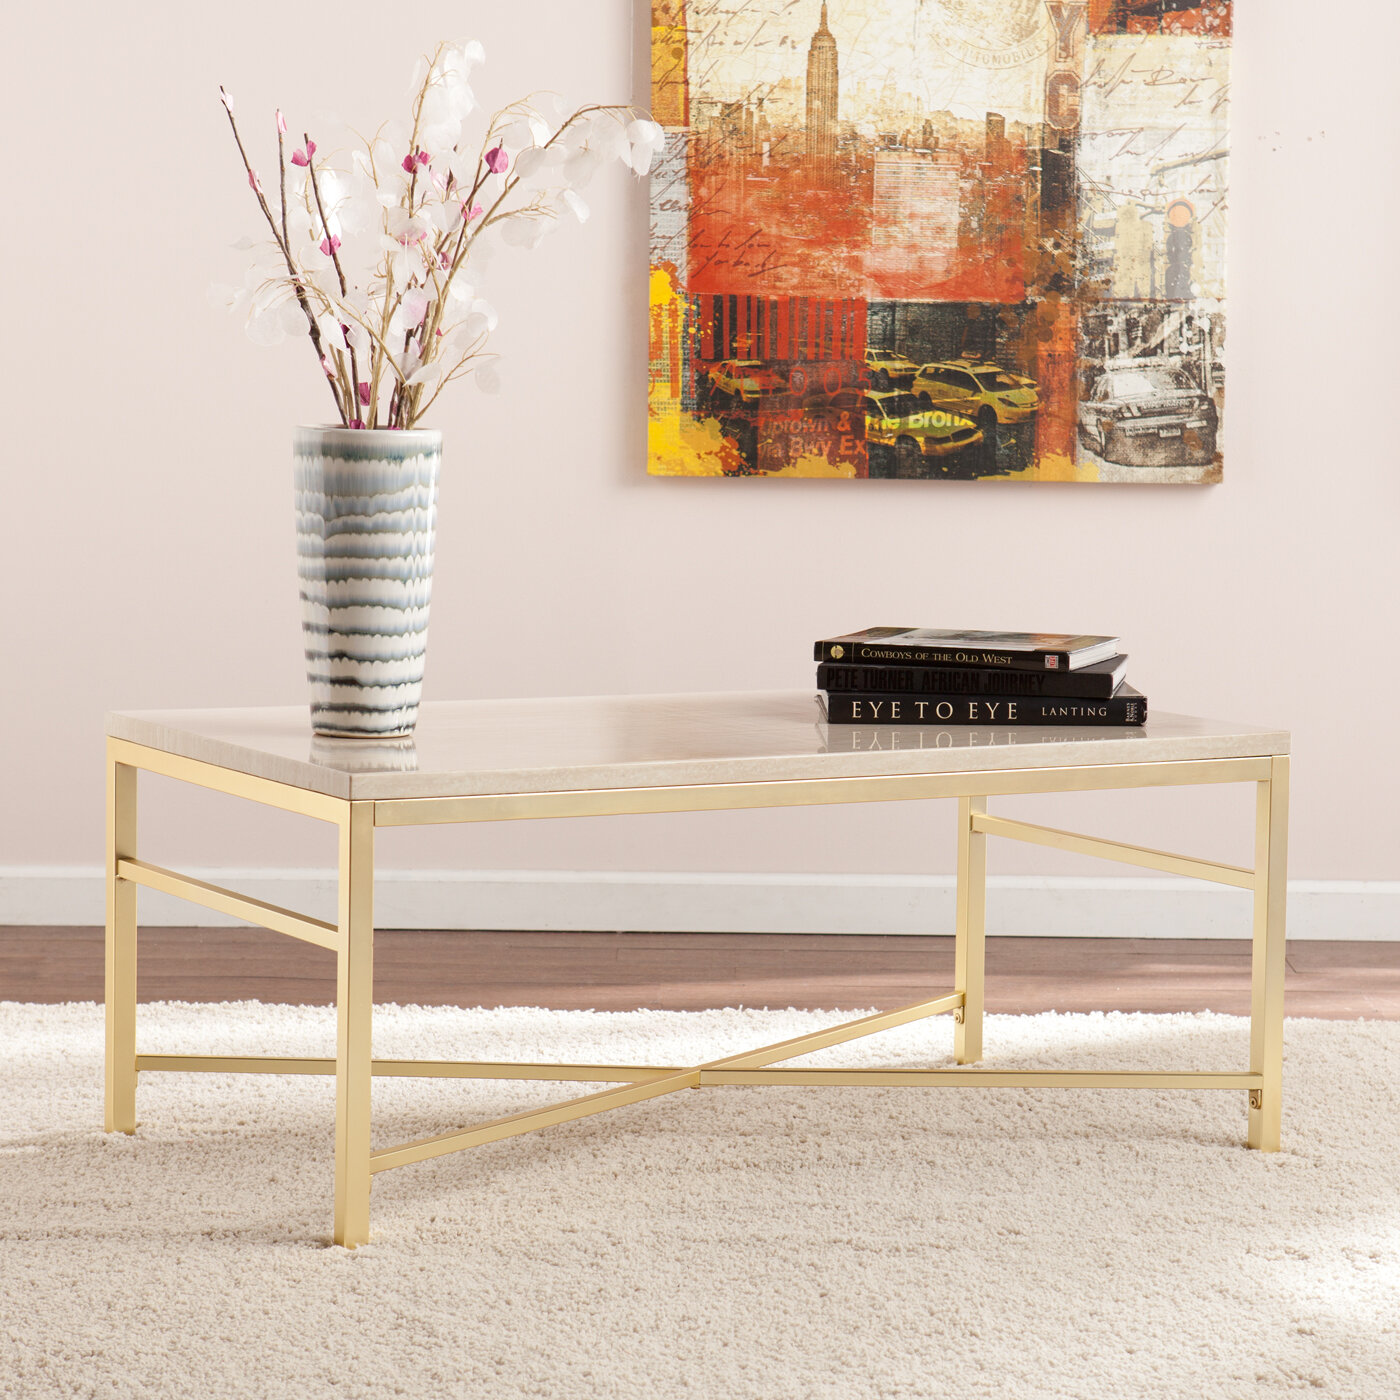 furniture design table. Furniture Design Table U